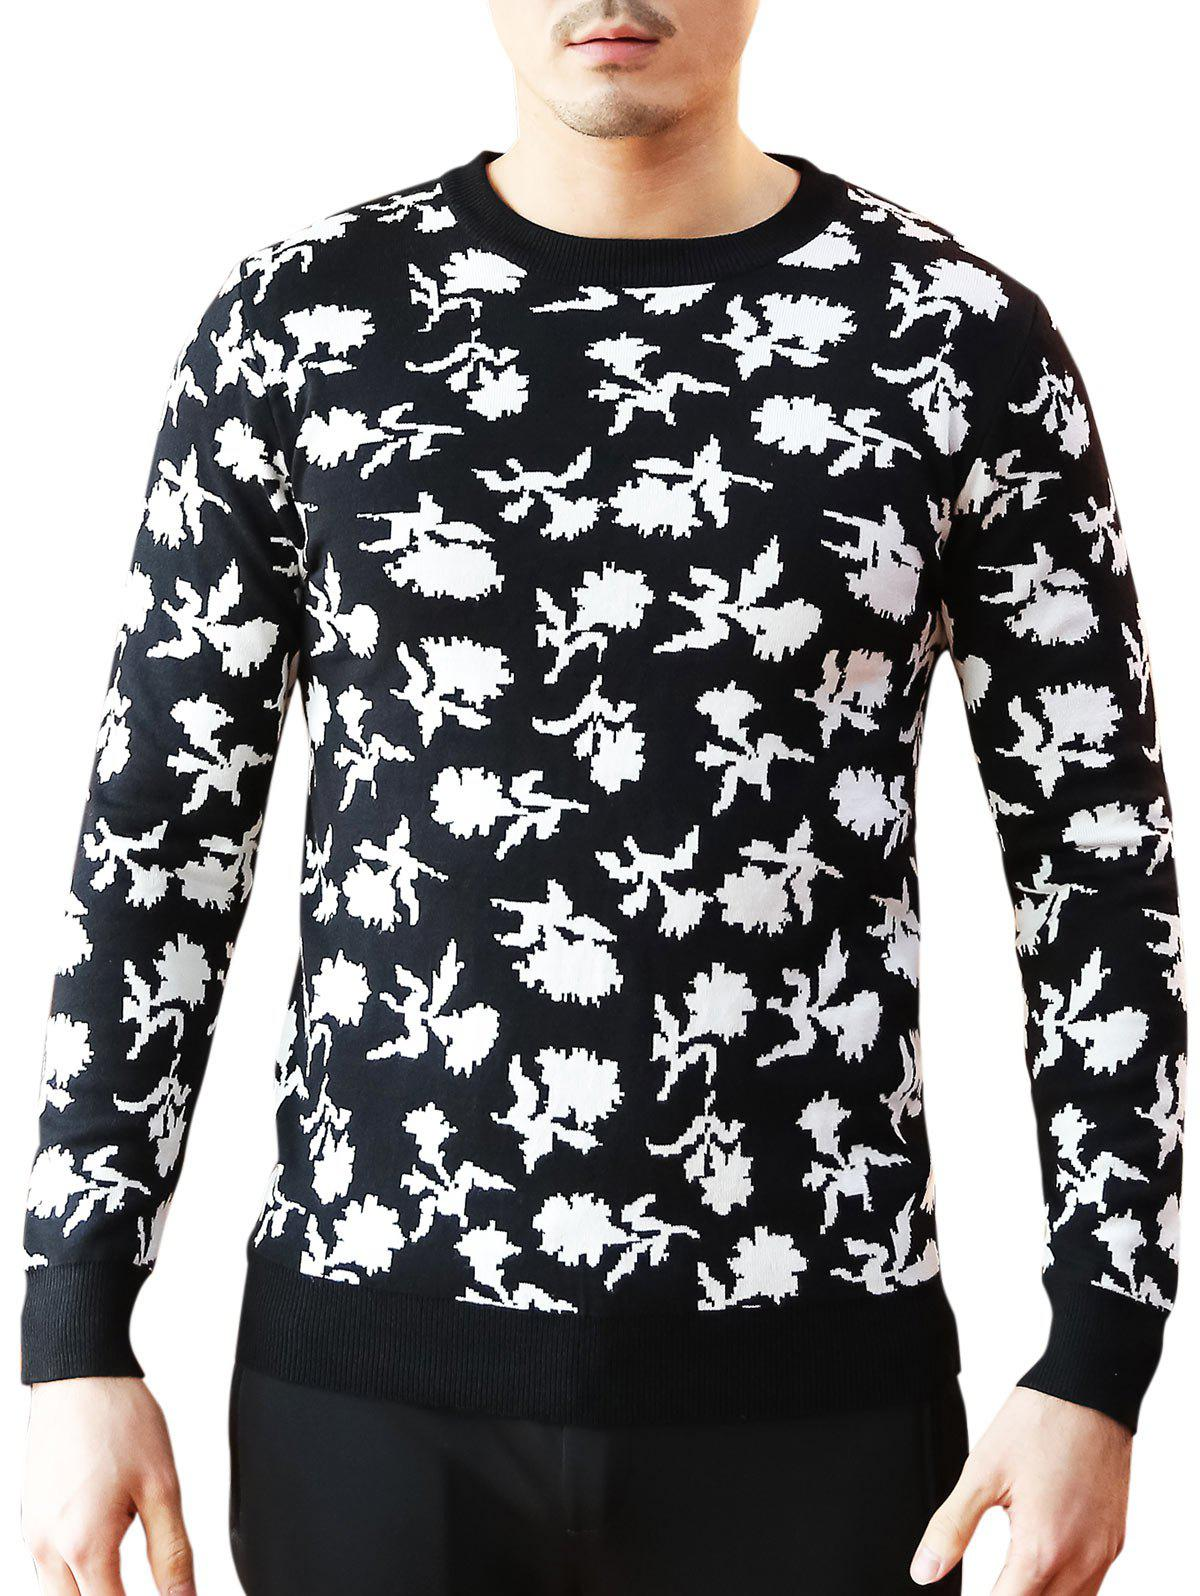 Floral Pattern Crew Neck Sweater - BLACK 3XL